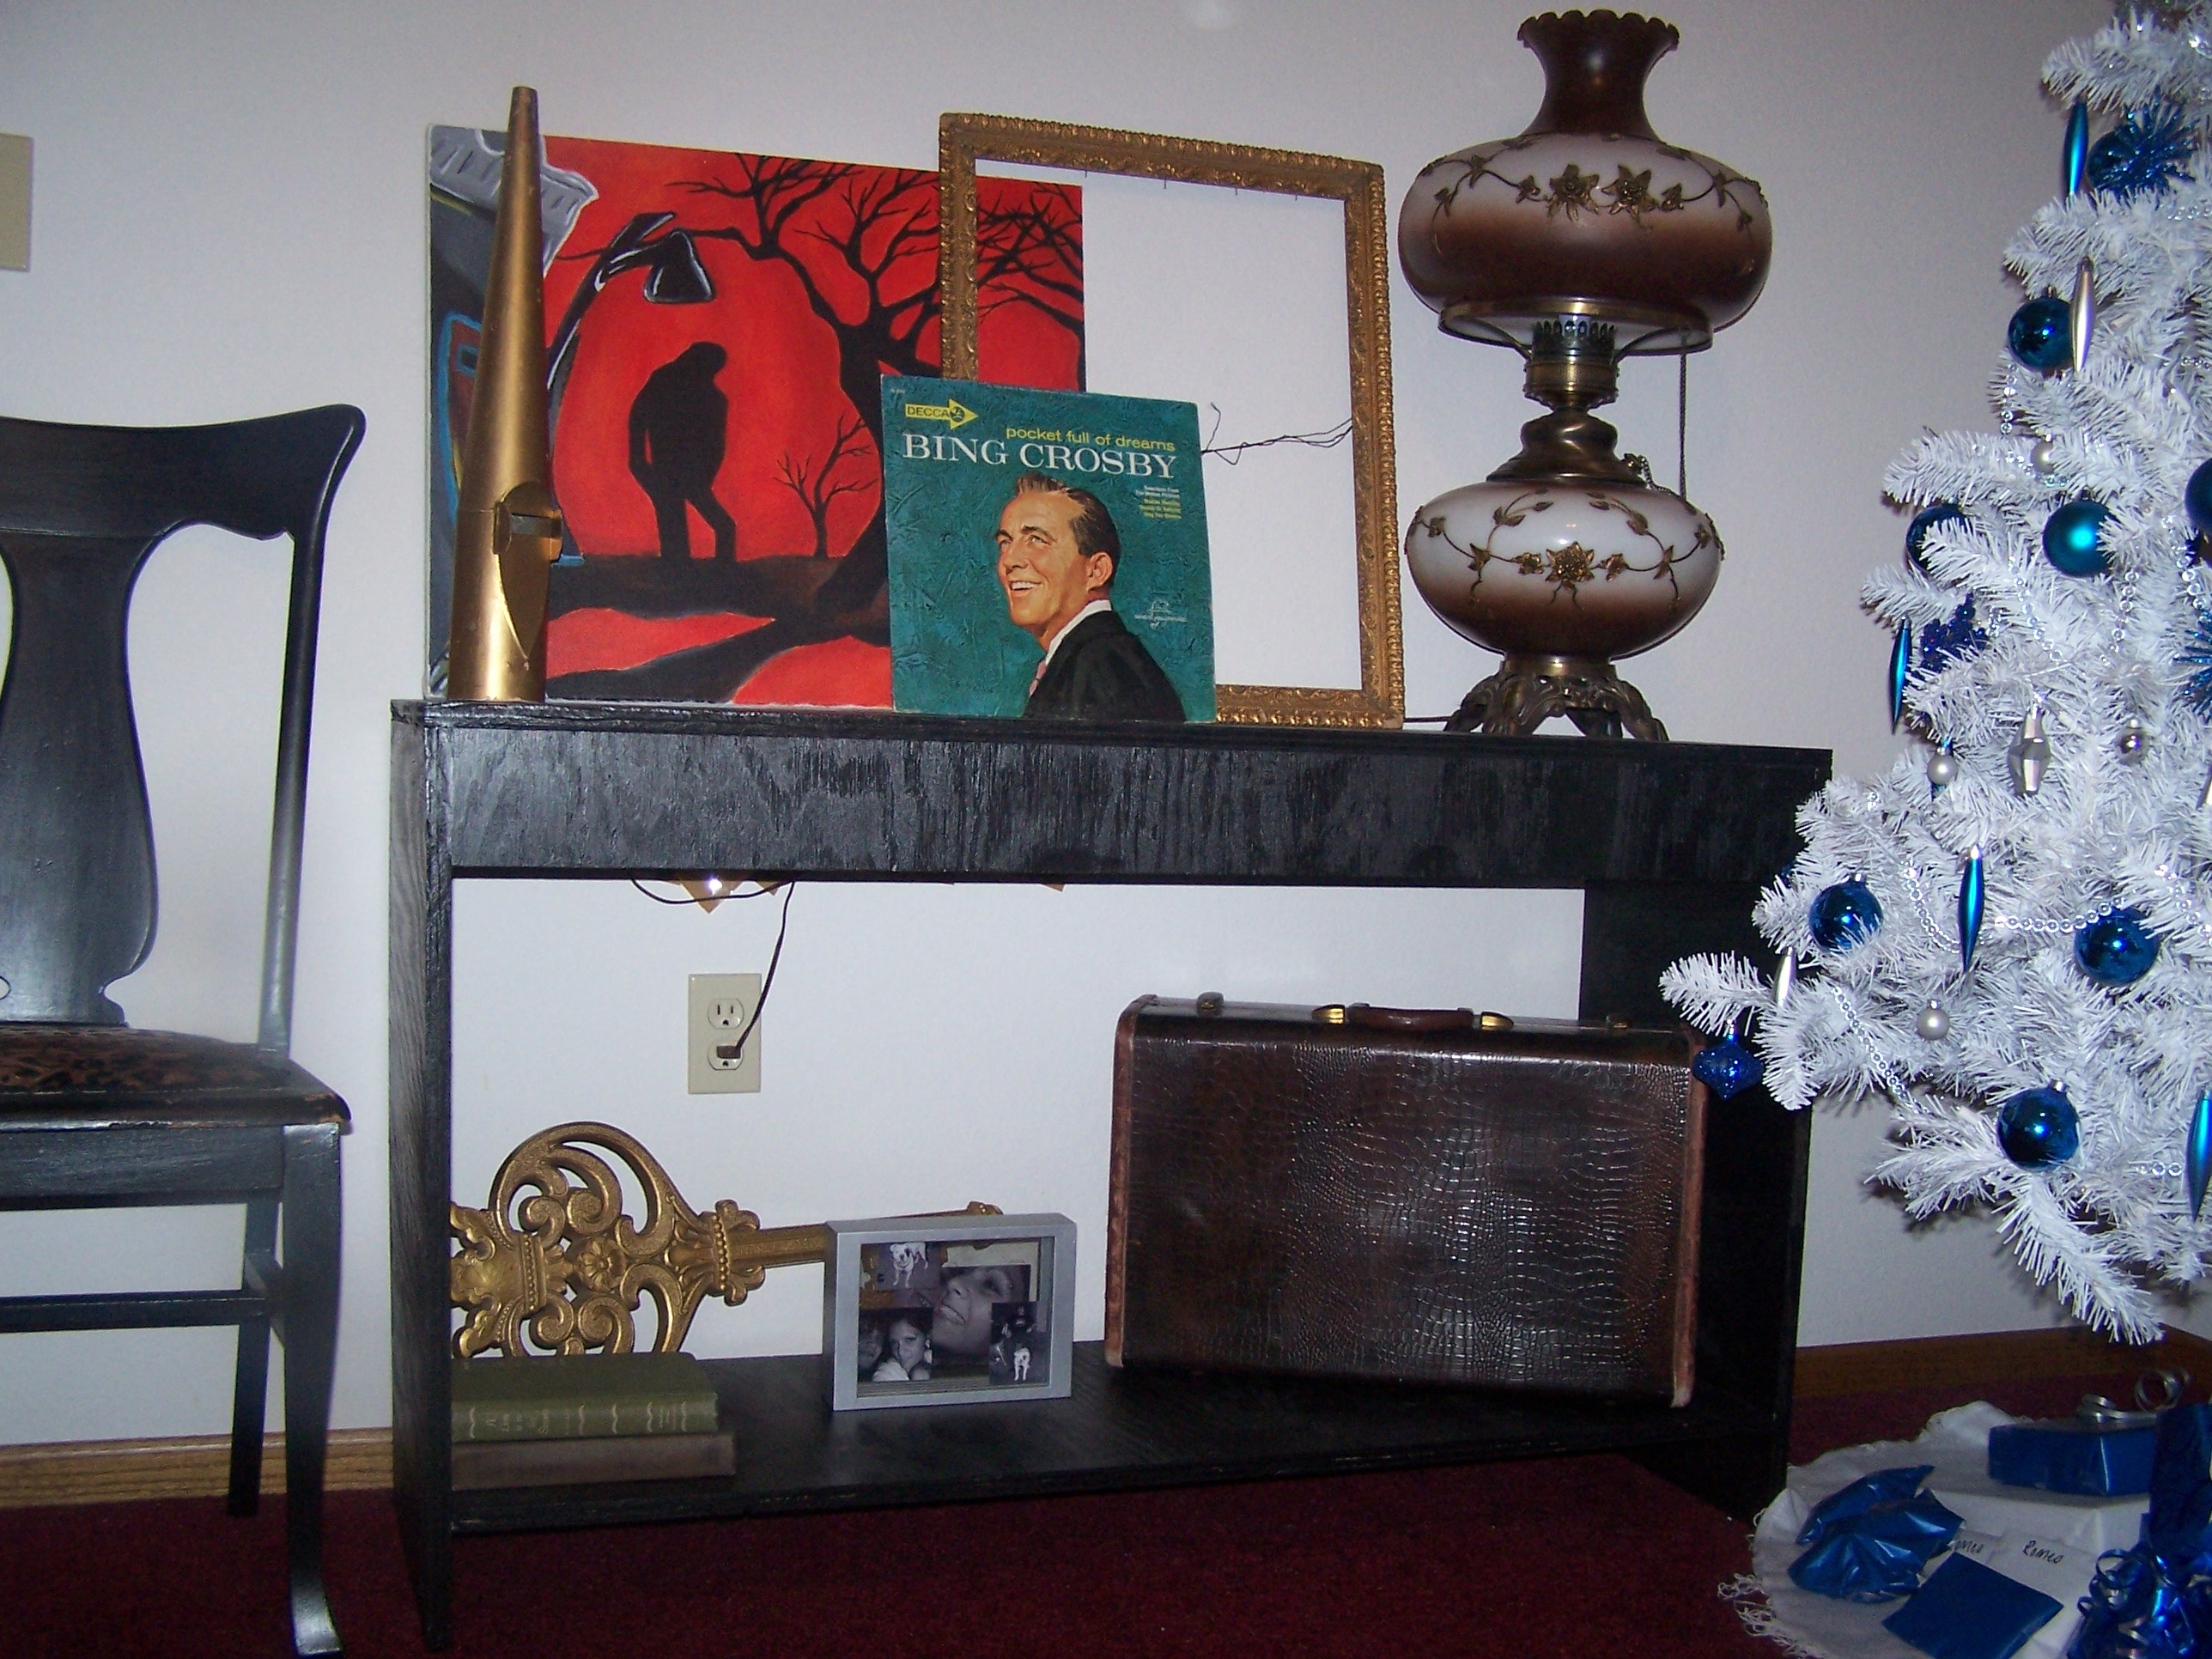 This is the close up of the table that Tony made.  The lamp is an antique from my Grandparents.  The red painting is another original by Ryan Foster.  Some other random fun odds and ends up there too.